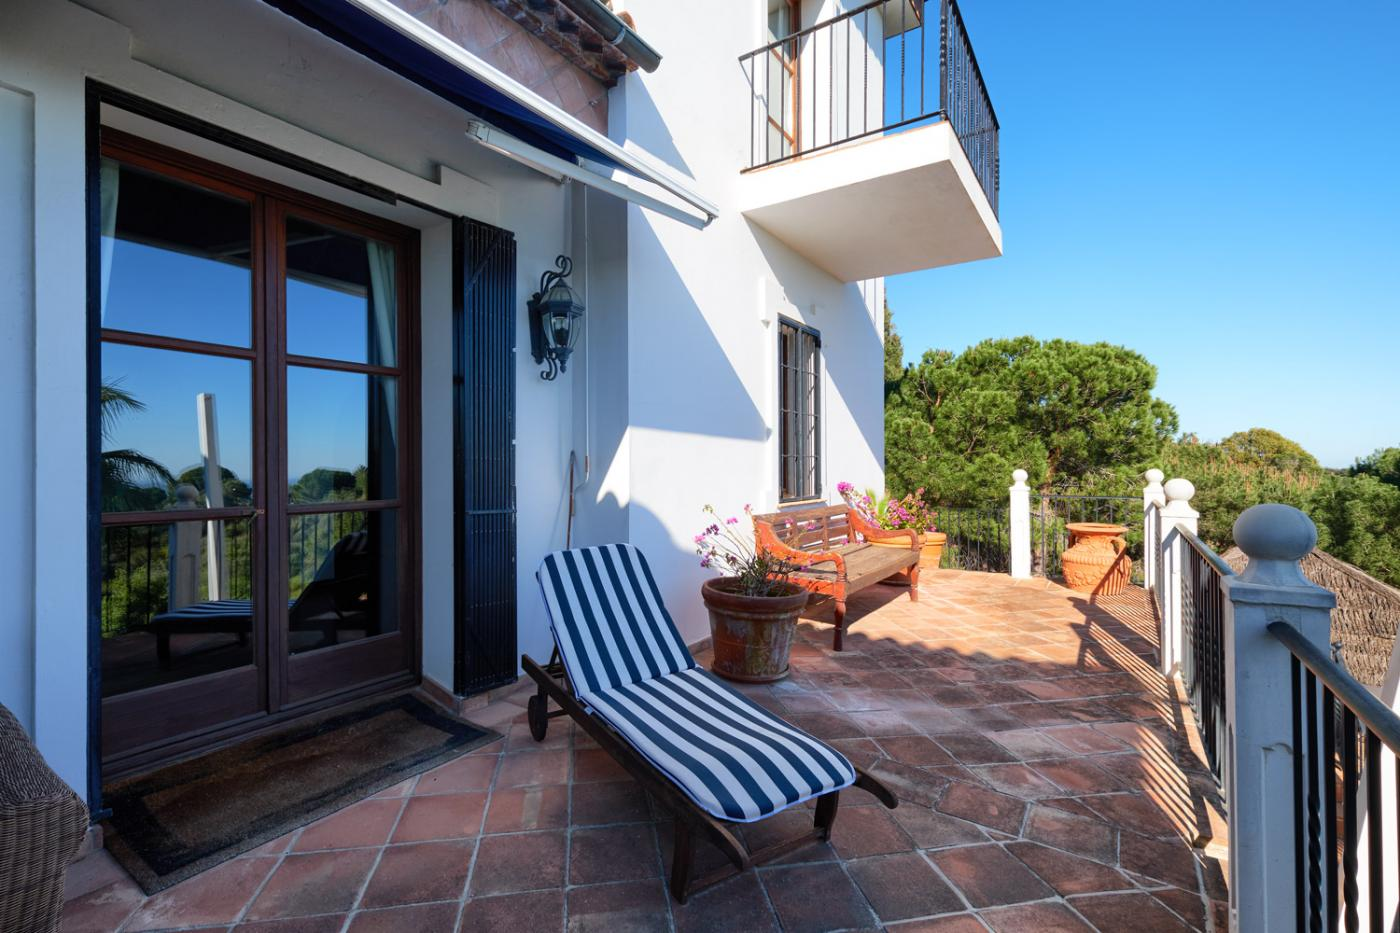 3 Bedroom Coastal Property Country Style Living for Sale in Estepona